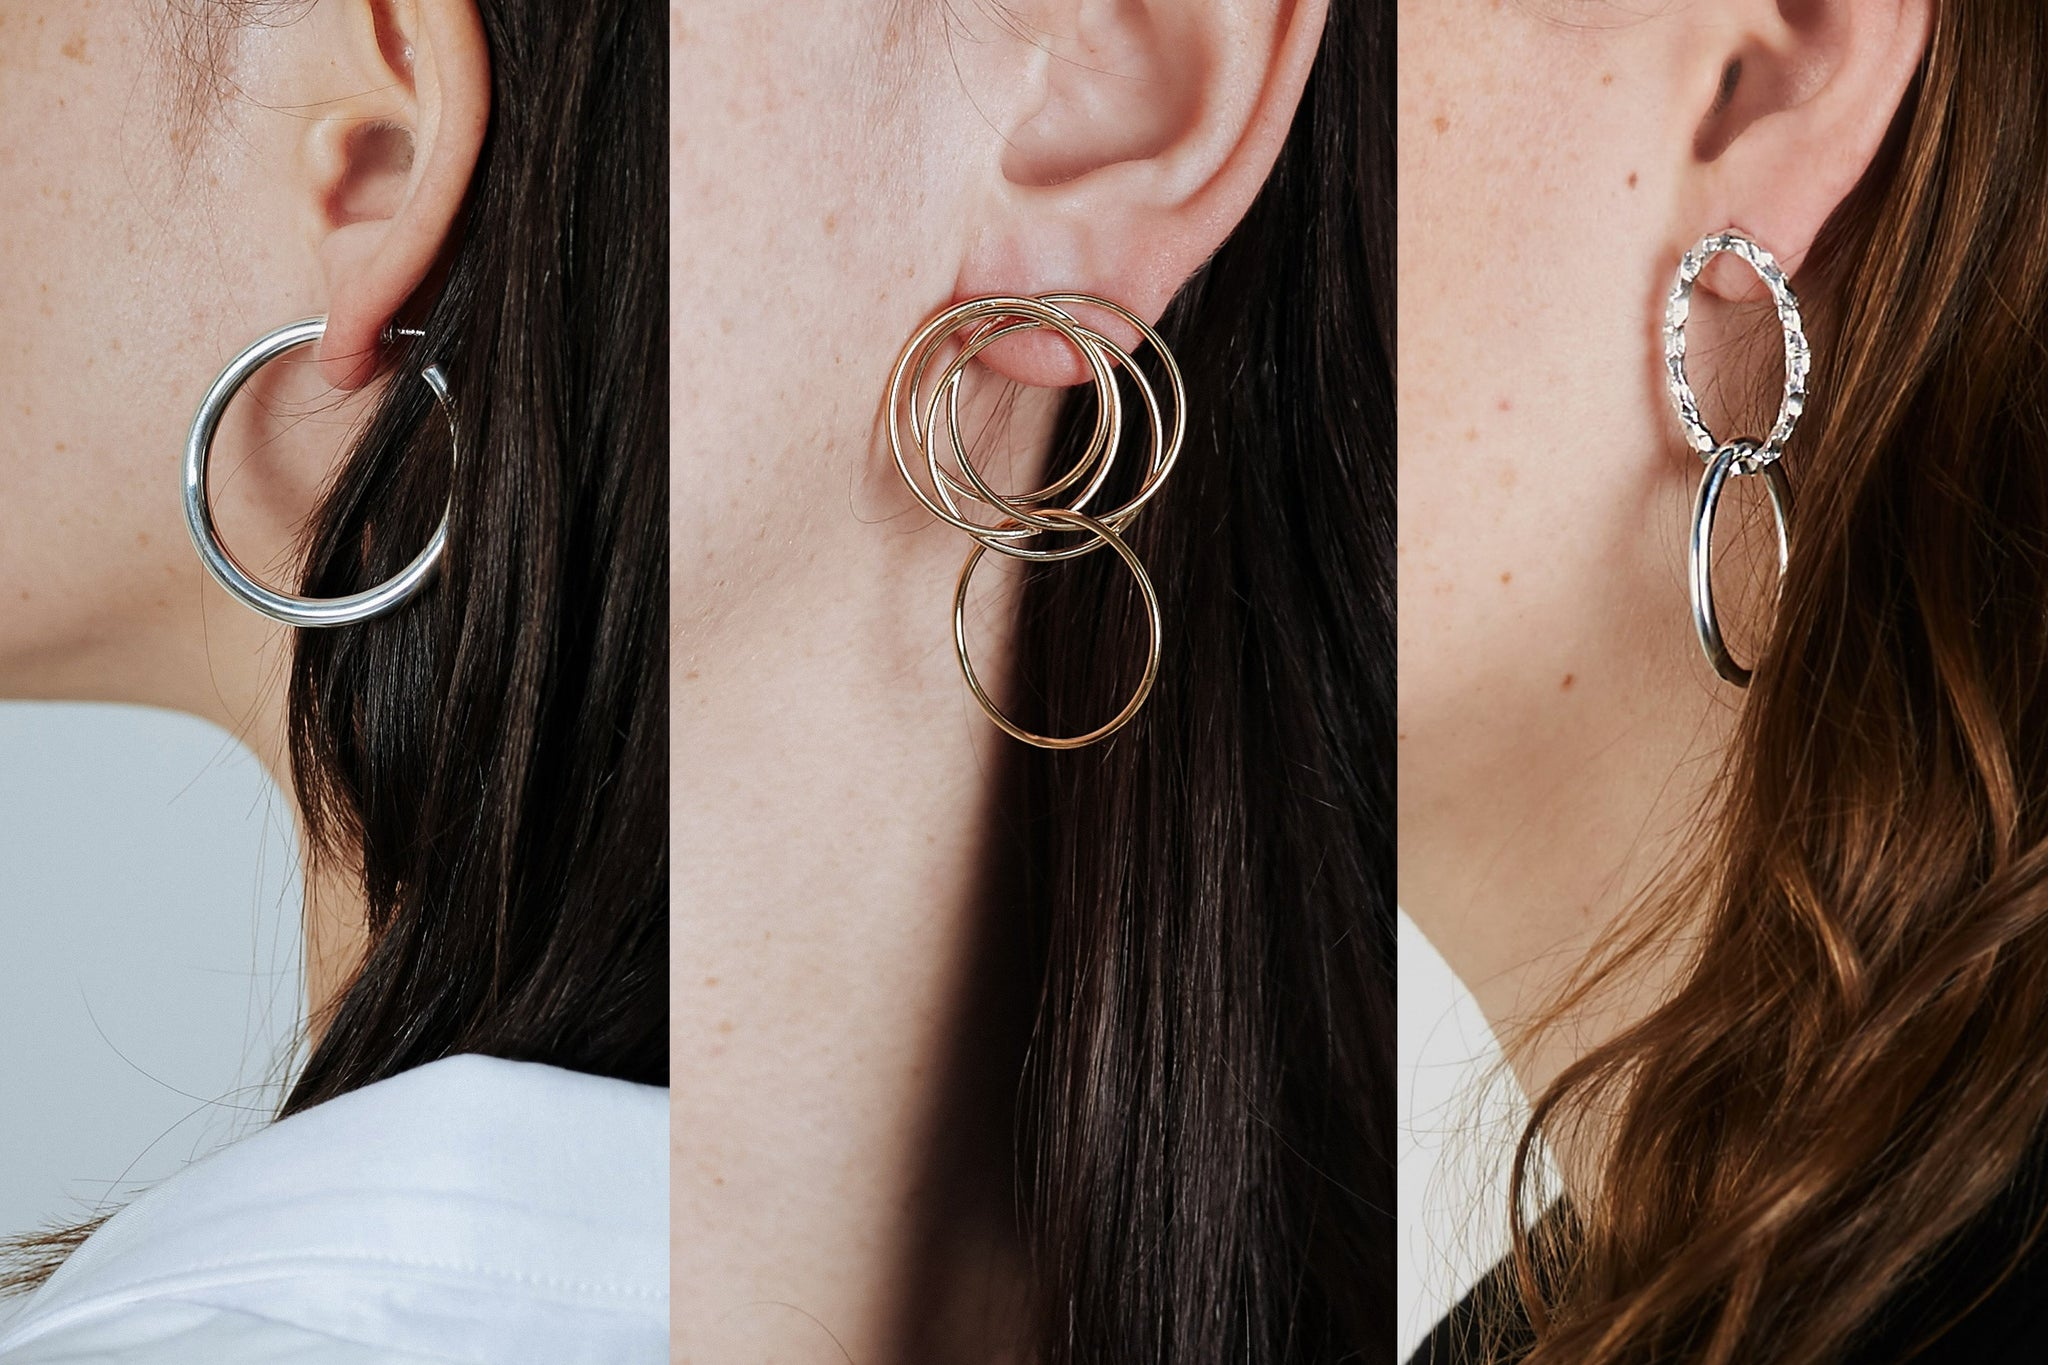 Ellery earrings, Rachel Comey Earrings, Holly Ryan earrings, jewellery trends 2017, cool hoop earrings